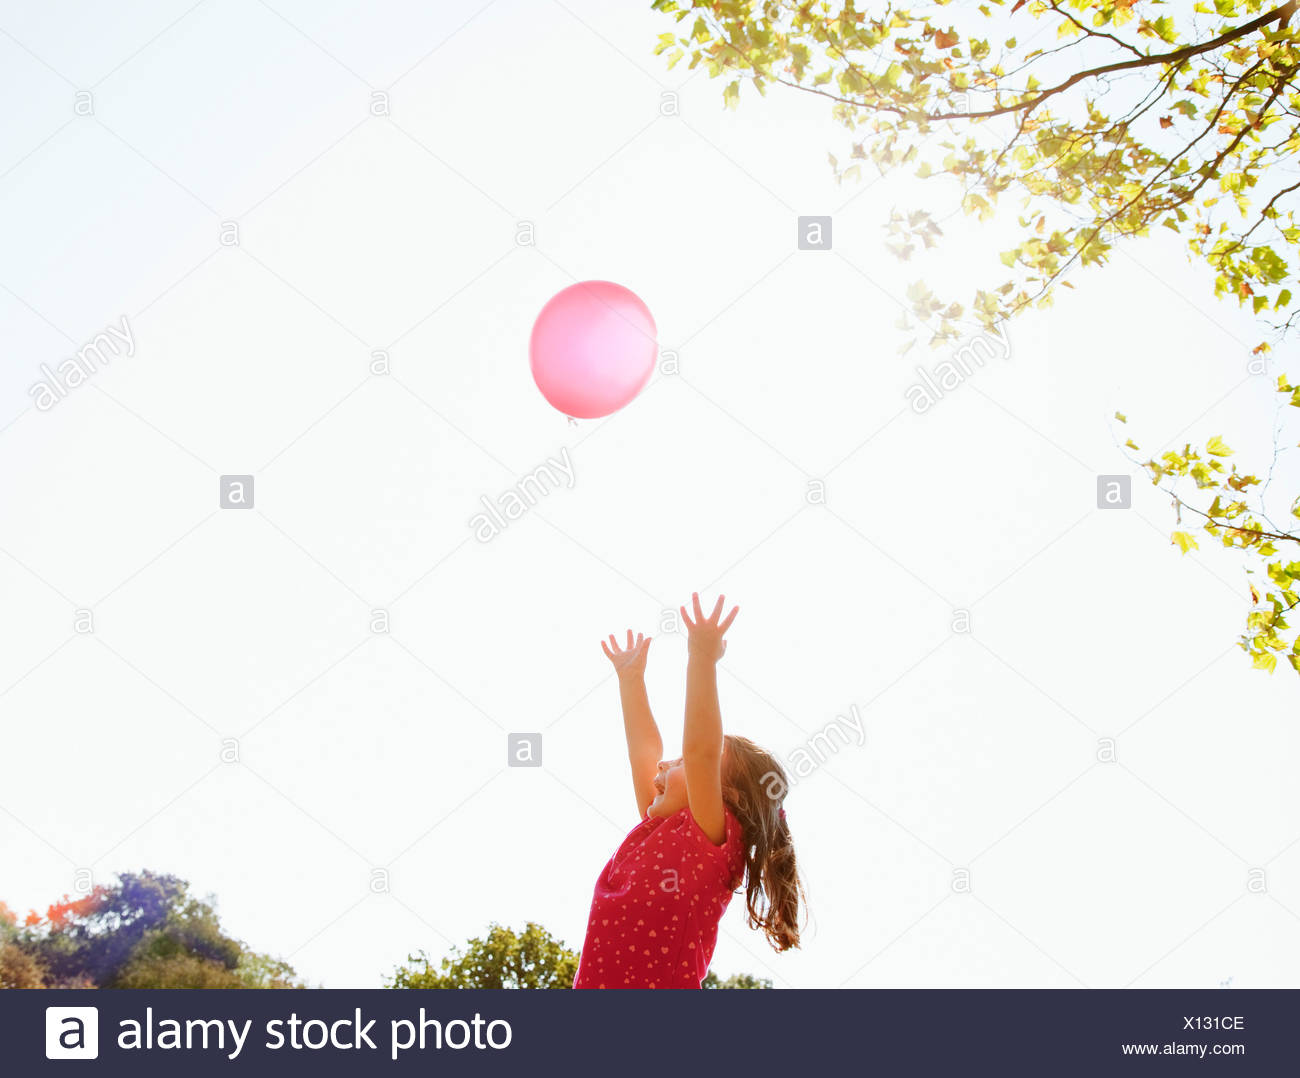 Girl reaching for red balloon in sunny sky - Stock Image